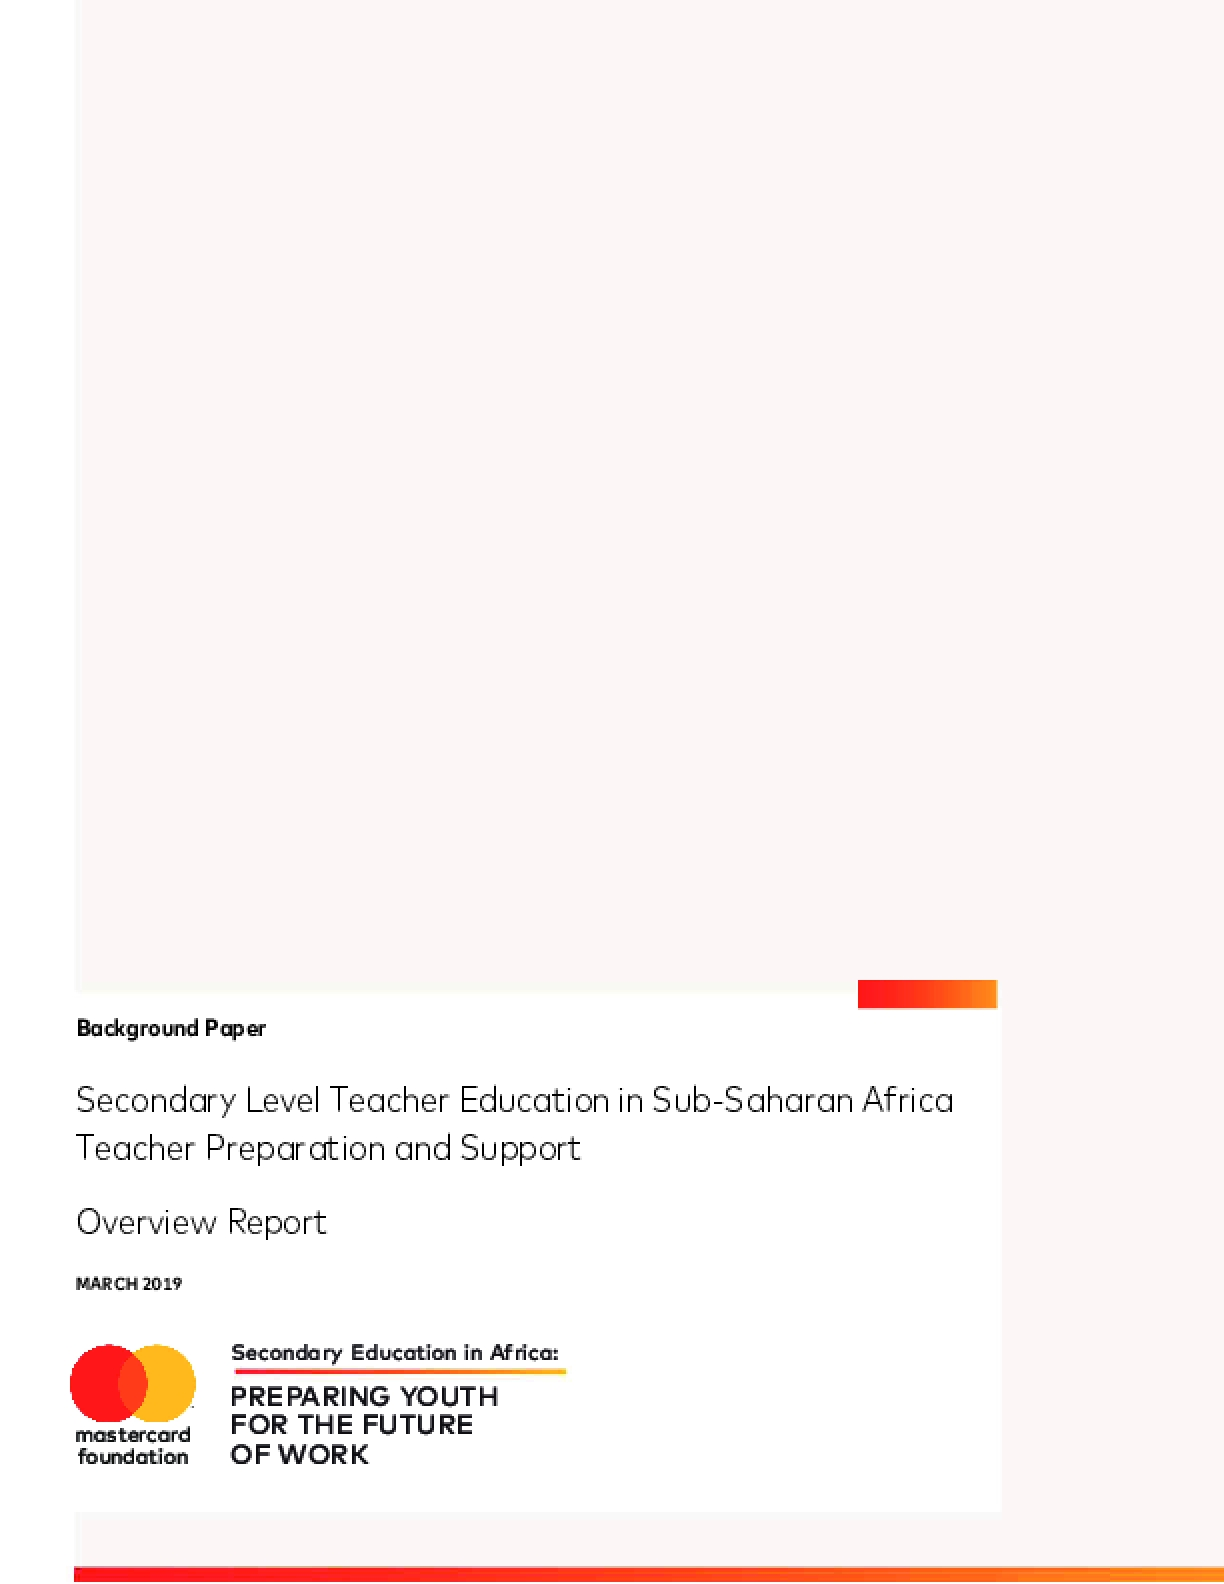 Secondary Level Teacher Education in Sub-Saharan Africa Teacher Preparation and Support Overview Report